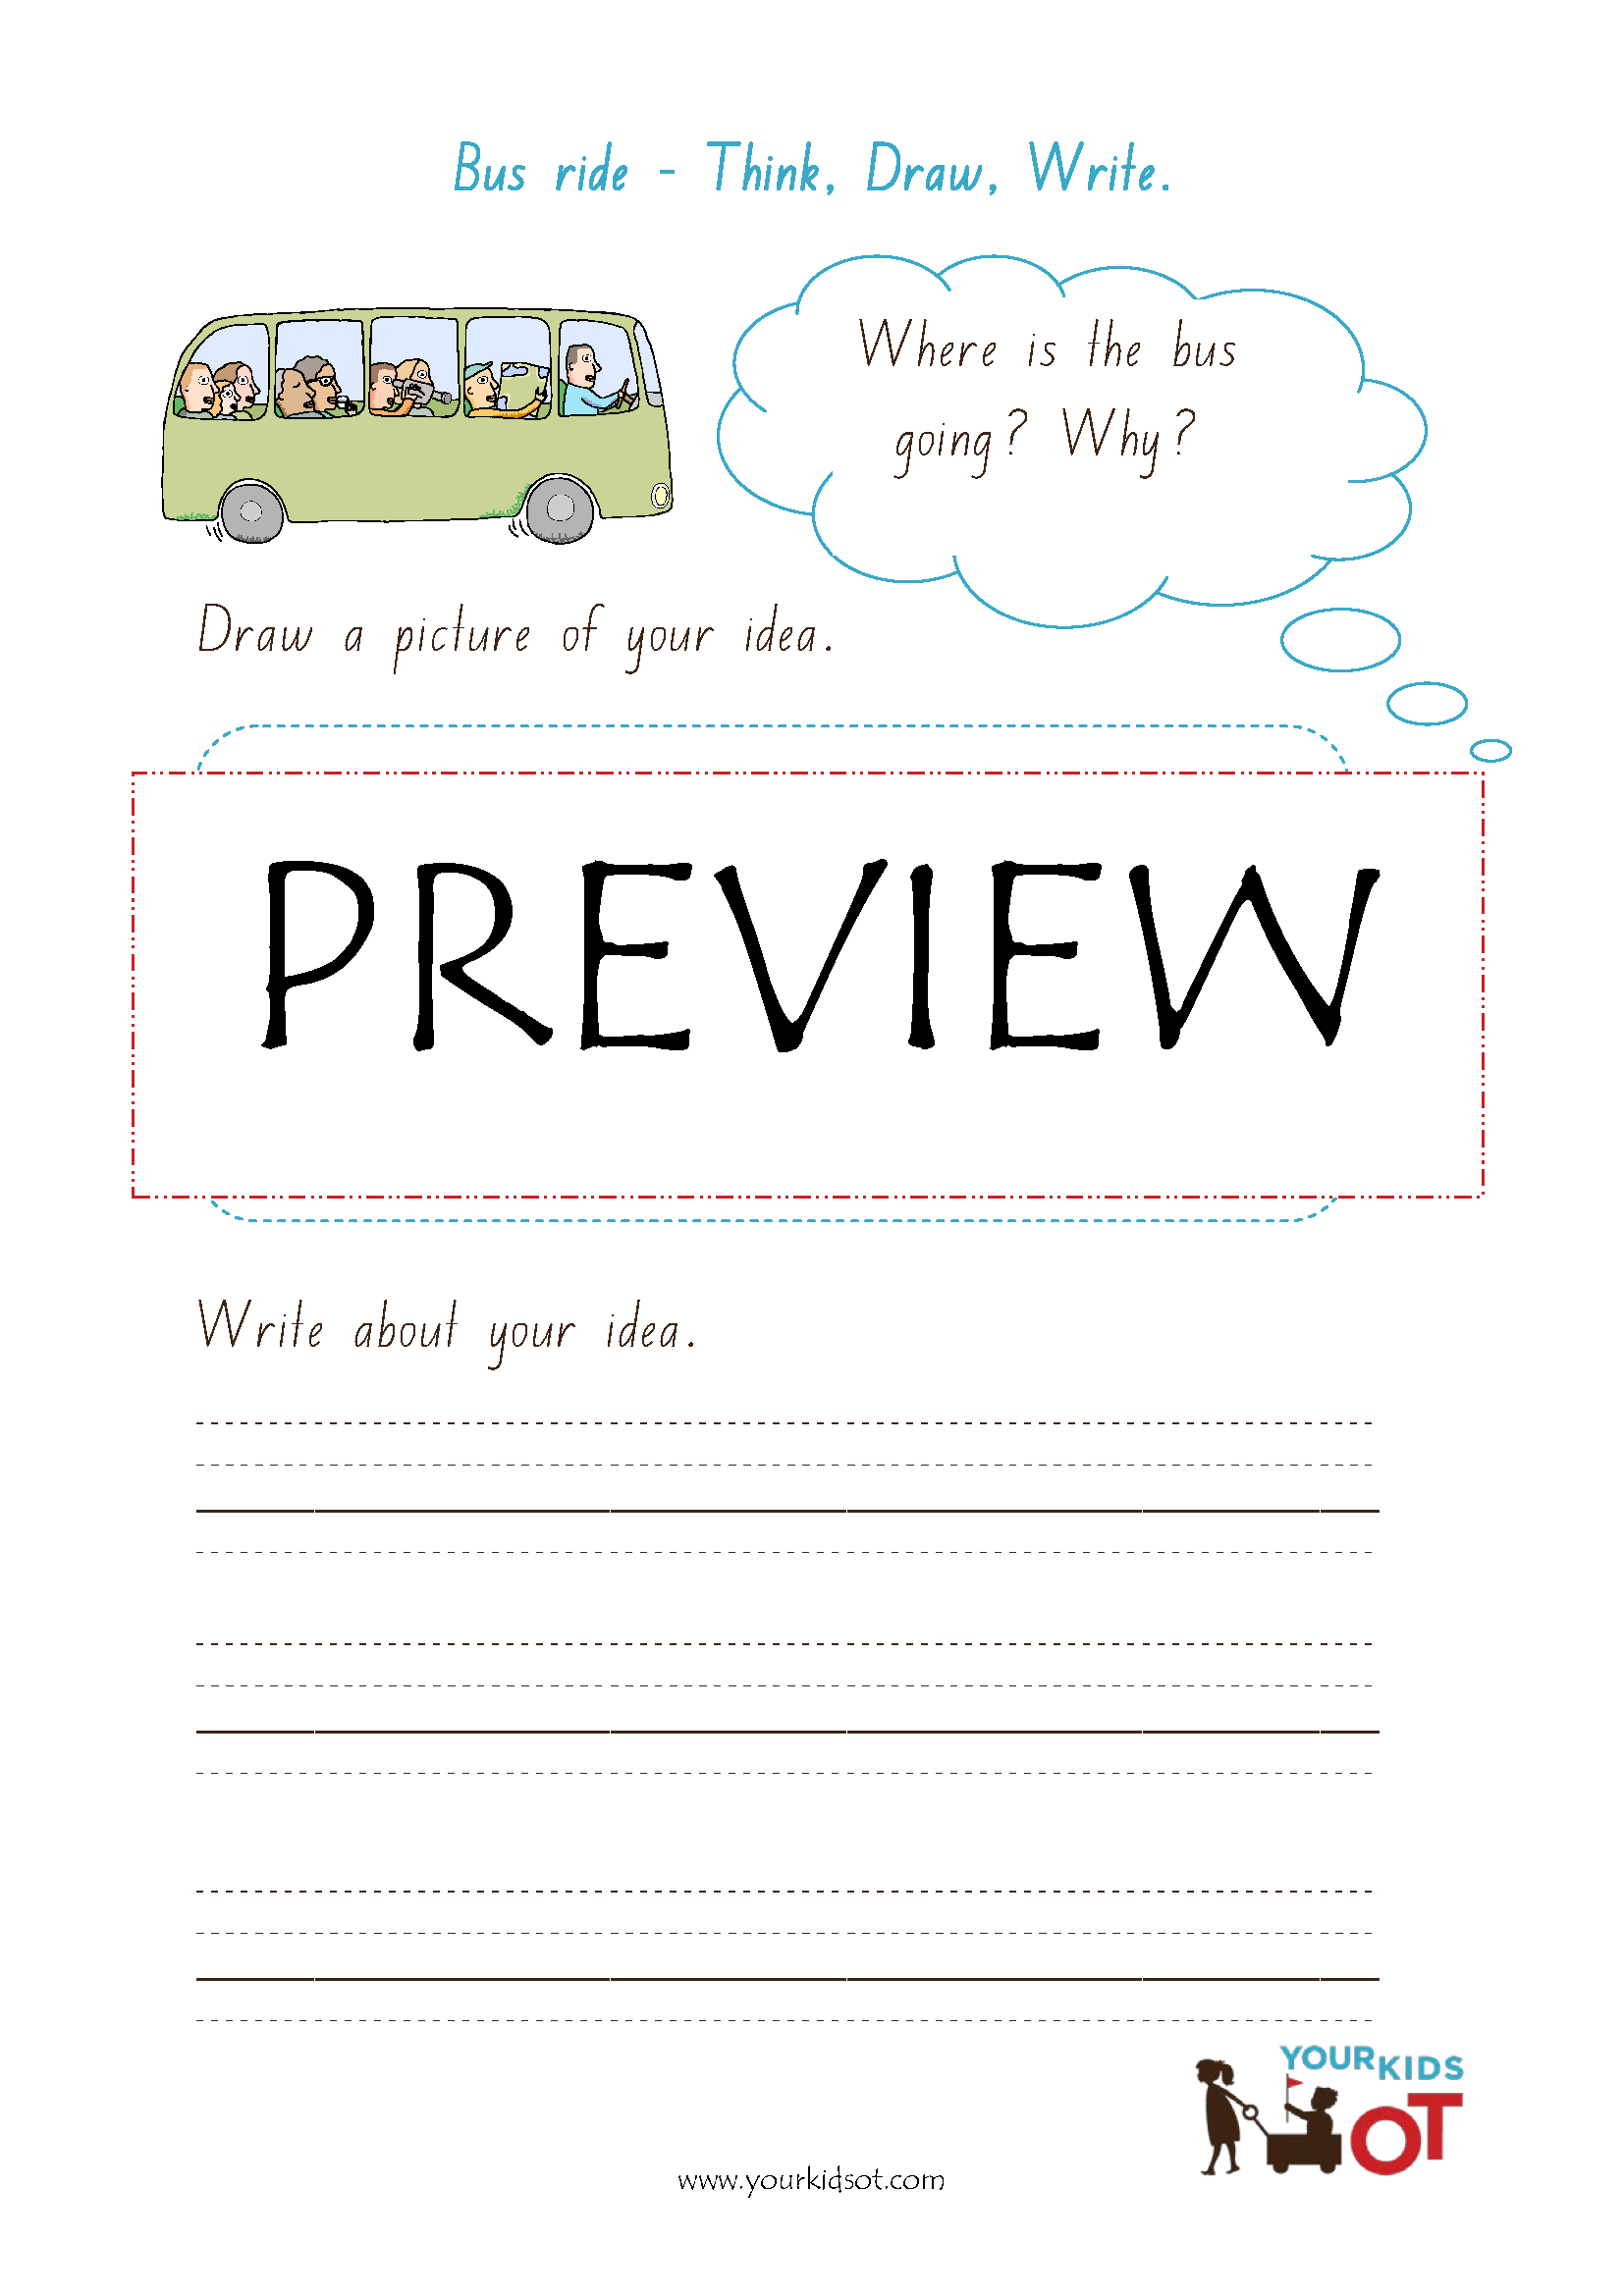 Think Draw Write Sentence Writing Prompt Worksheet